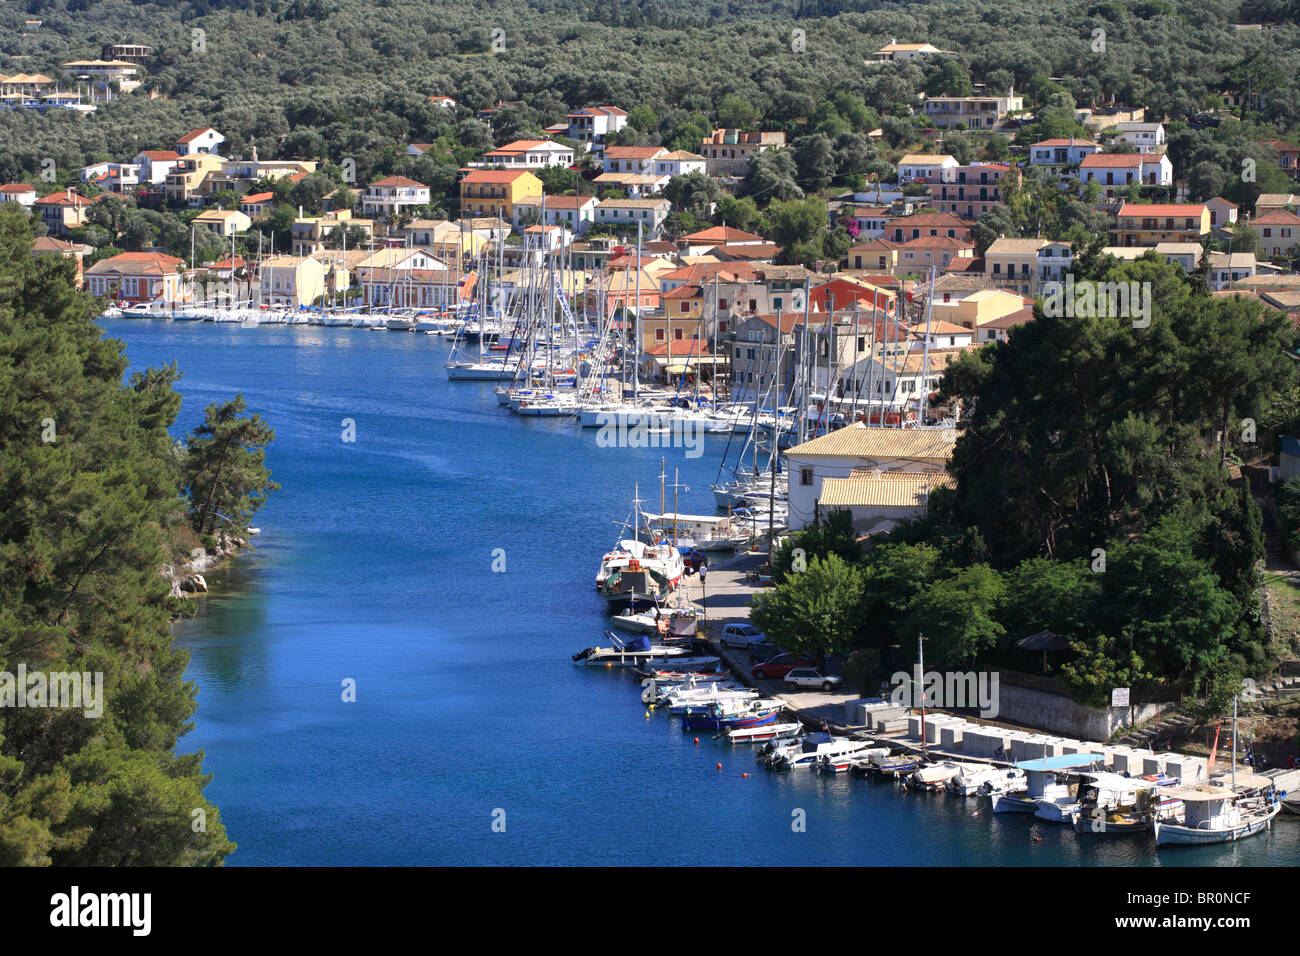 Gaios port, fishing boats and sailing boats with the greek town behind. Paxos is a small Ionian Island. - Stock Image